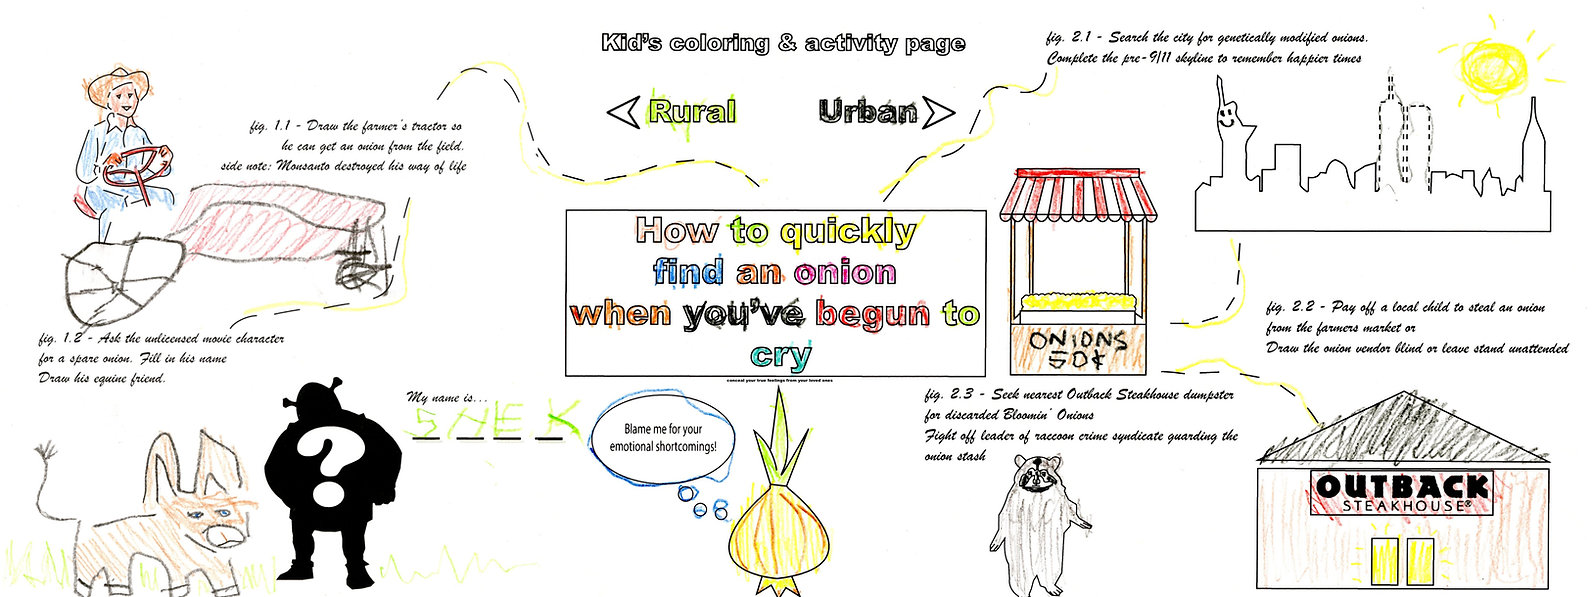 how to quickly find an onion when you've